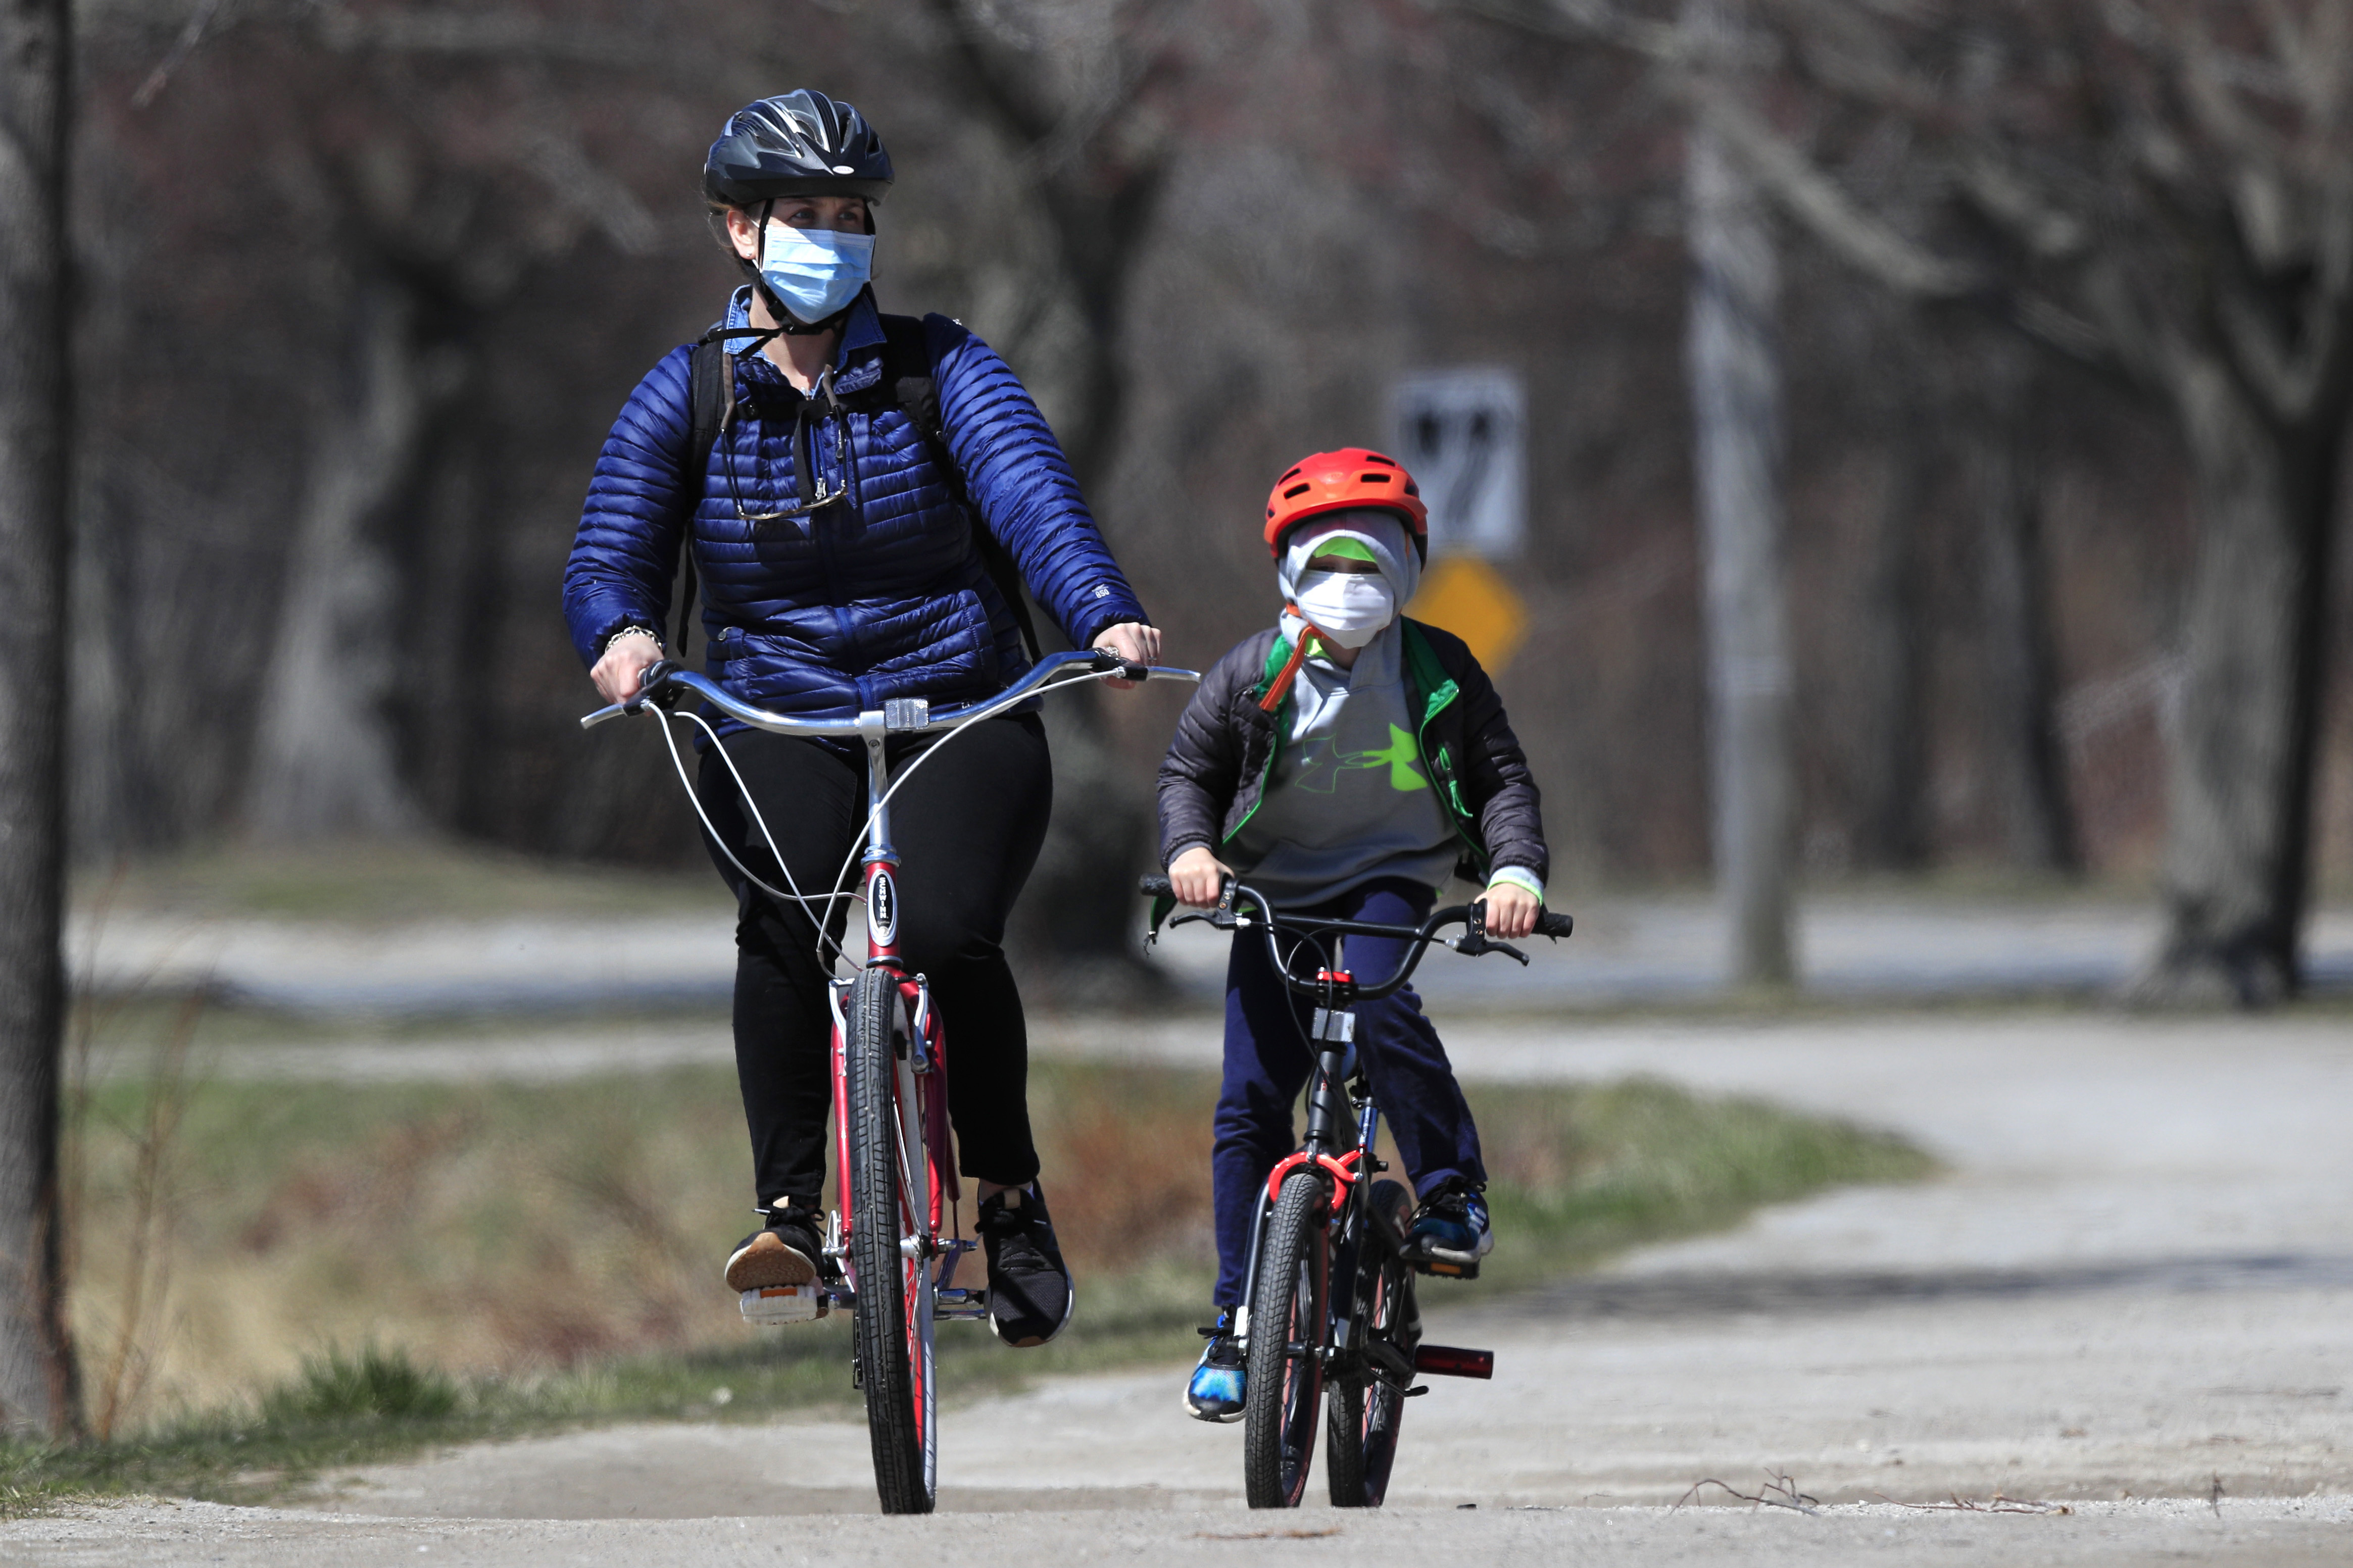 In this Wednesday, April 8, 2020, photo, bicyclists wear pandemic masks while riding in Portland, Maine. Bicycle sales have surged as shut-in families try to find a way to keep kids active at a time of lockdowns and stay-at-home orders during the coronavirus pandemic.